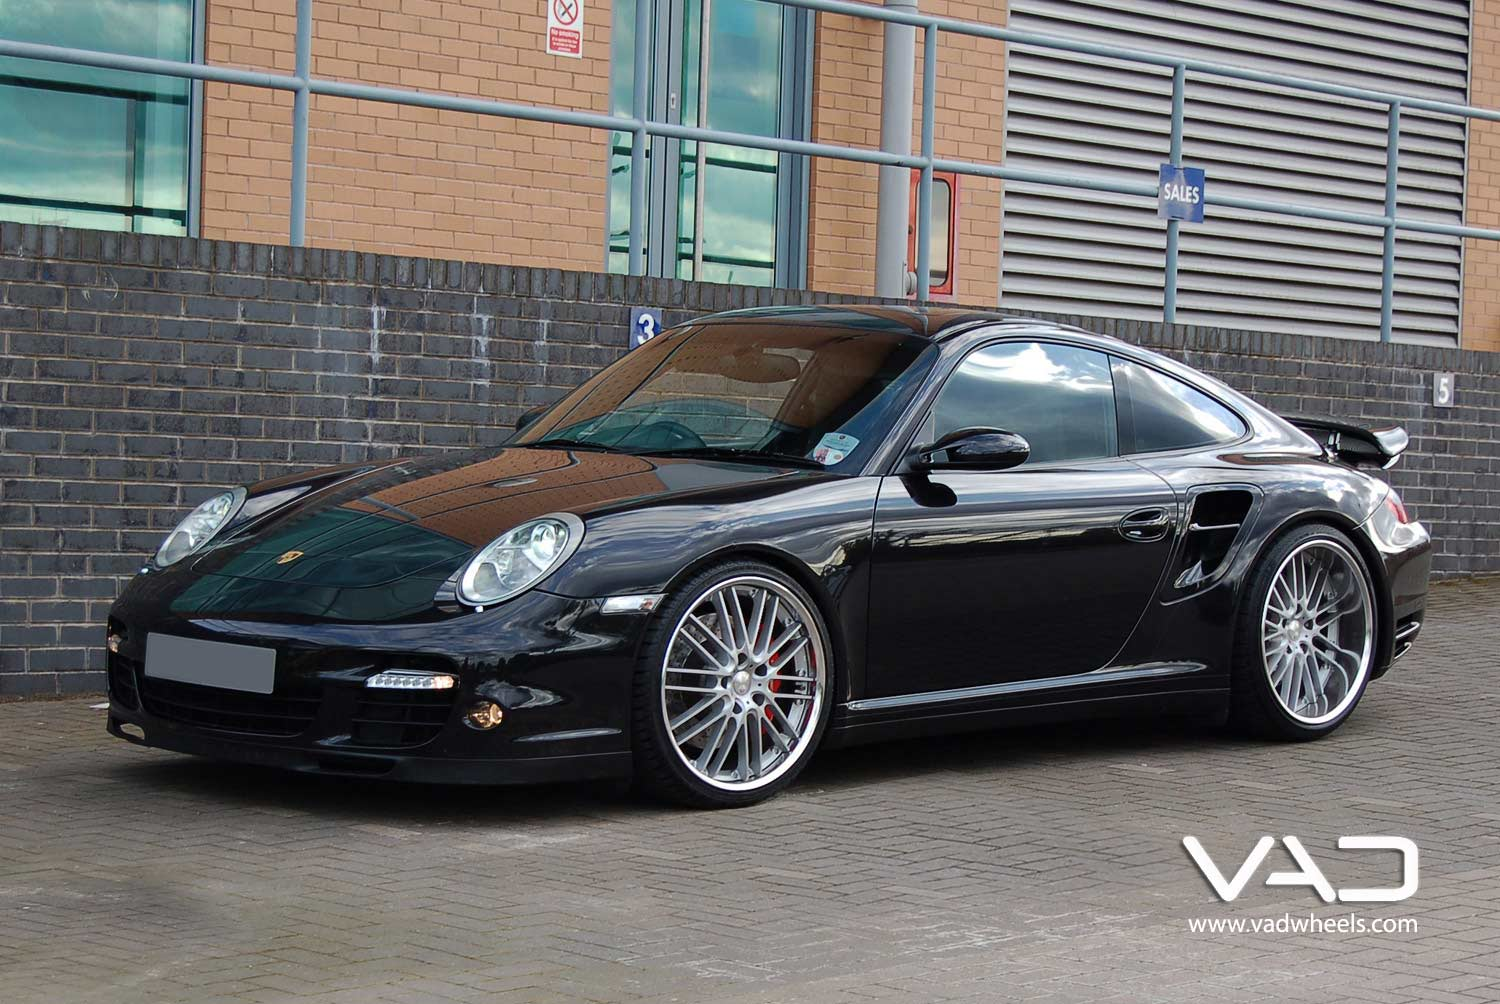 Porsche-997-Turbo-Fitted-With-20''-Trafficstar-RTM-Silver-Front-Profile